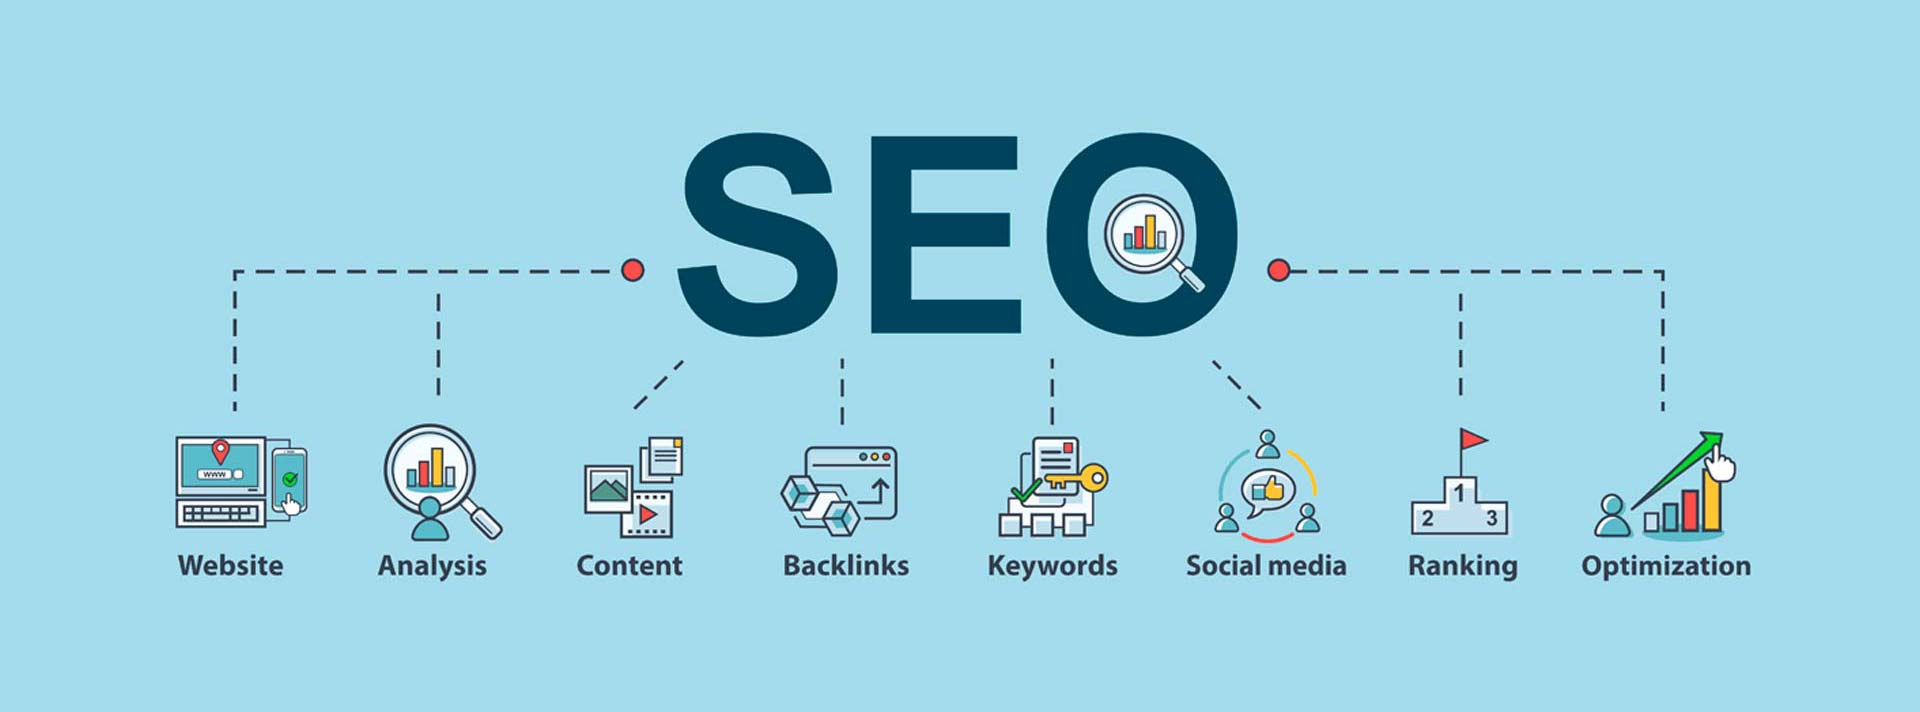 Why Our SEO STRATEGY Differs From Others?